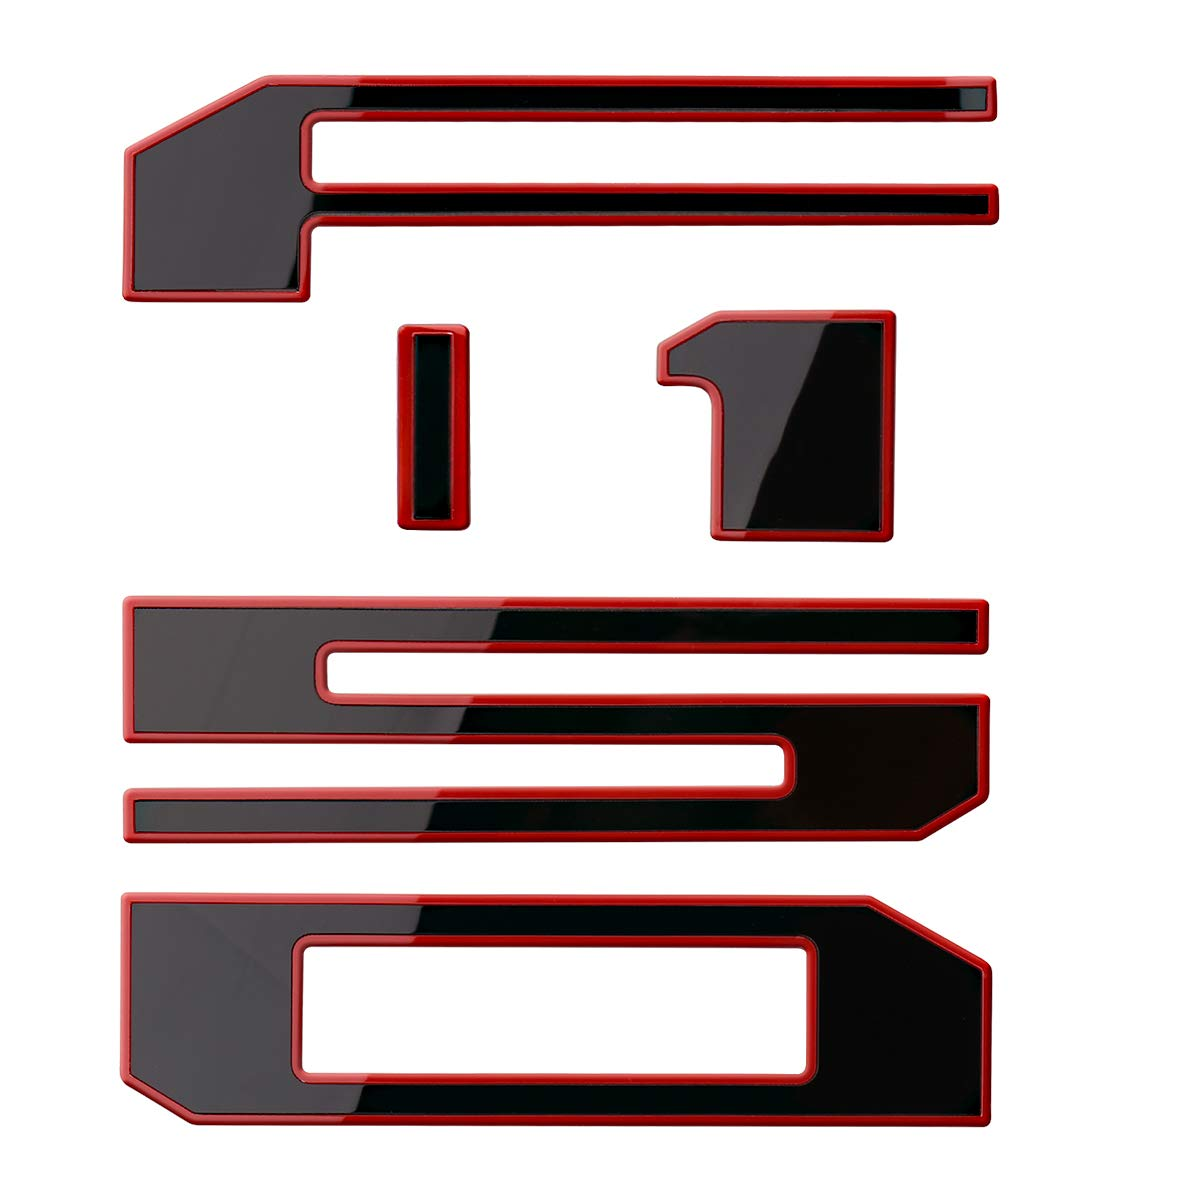 Tailgate Decal Letters for F150 2018 2019 Lawr Adhesive F150 Tailgate Insert Letters 3D F150 Emblem Chrome